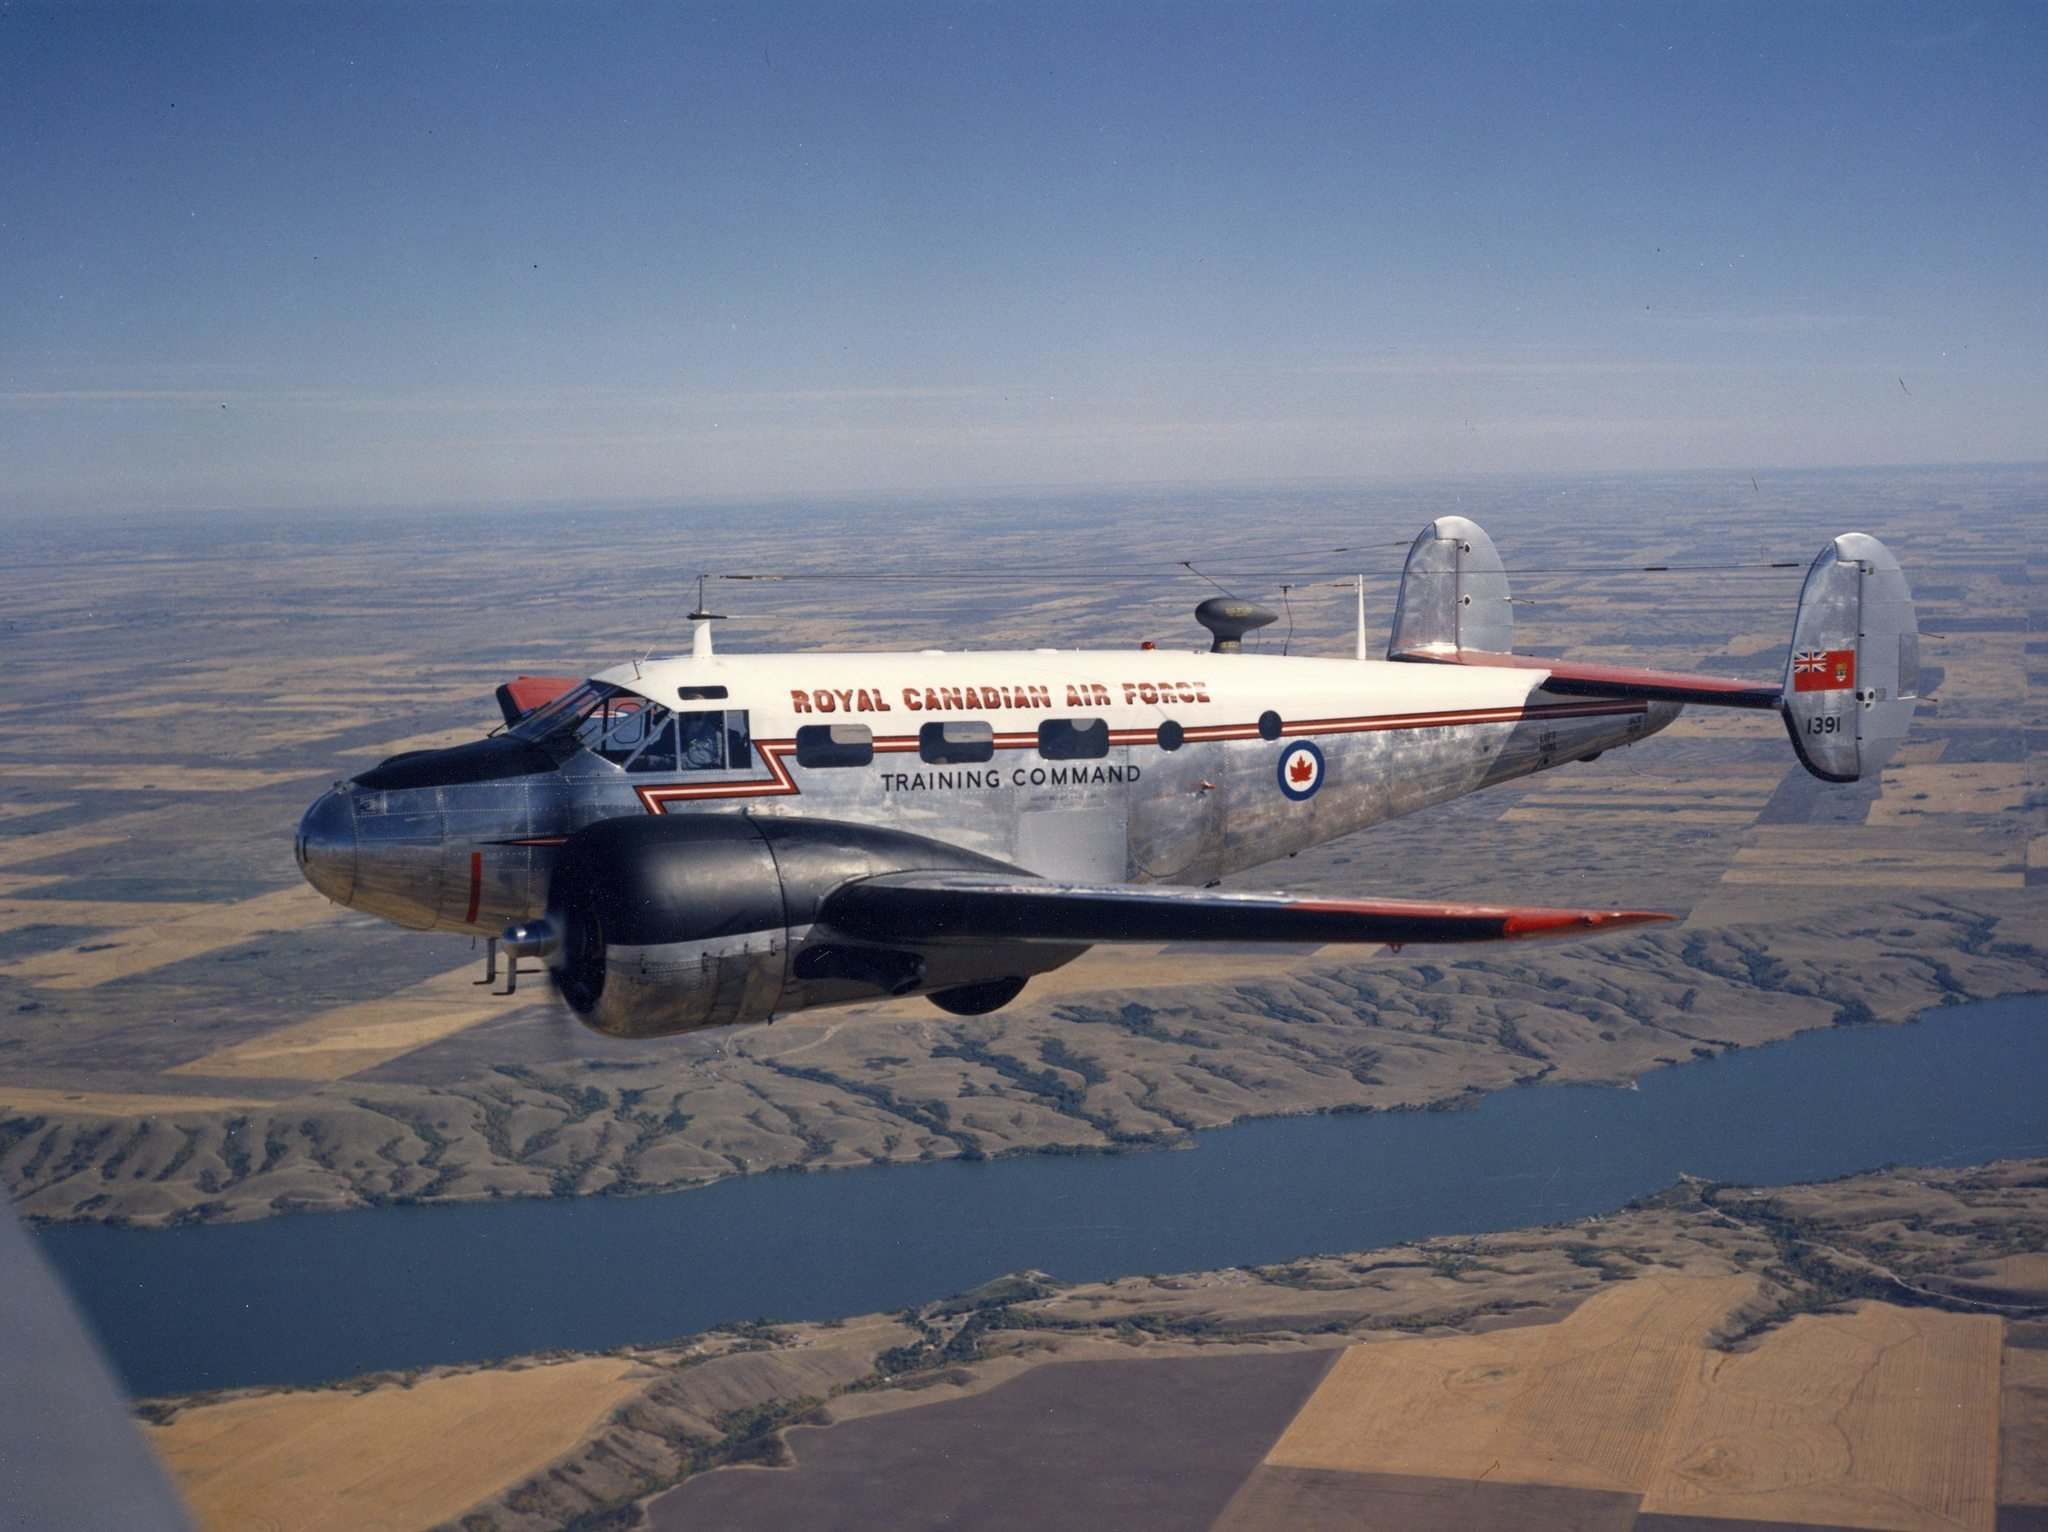 The C-45 Expeditor was a favourite training aircraft for the RCAF in the years after the Second World War.</p>